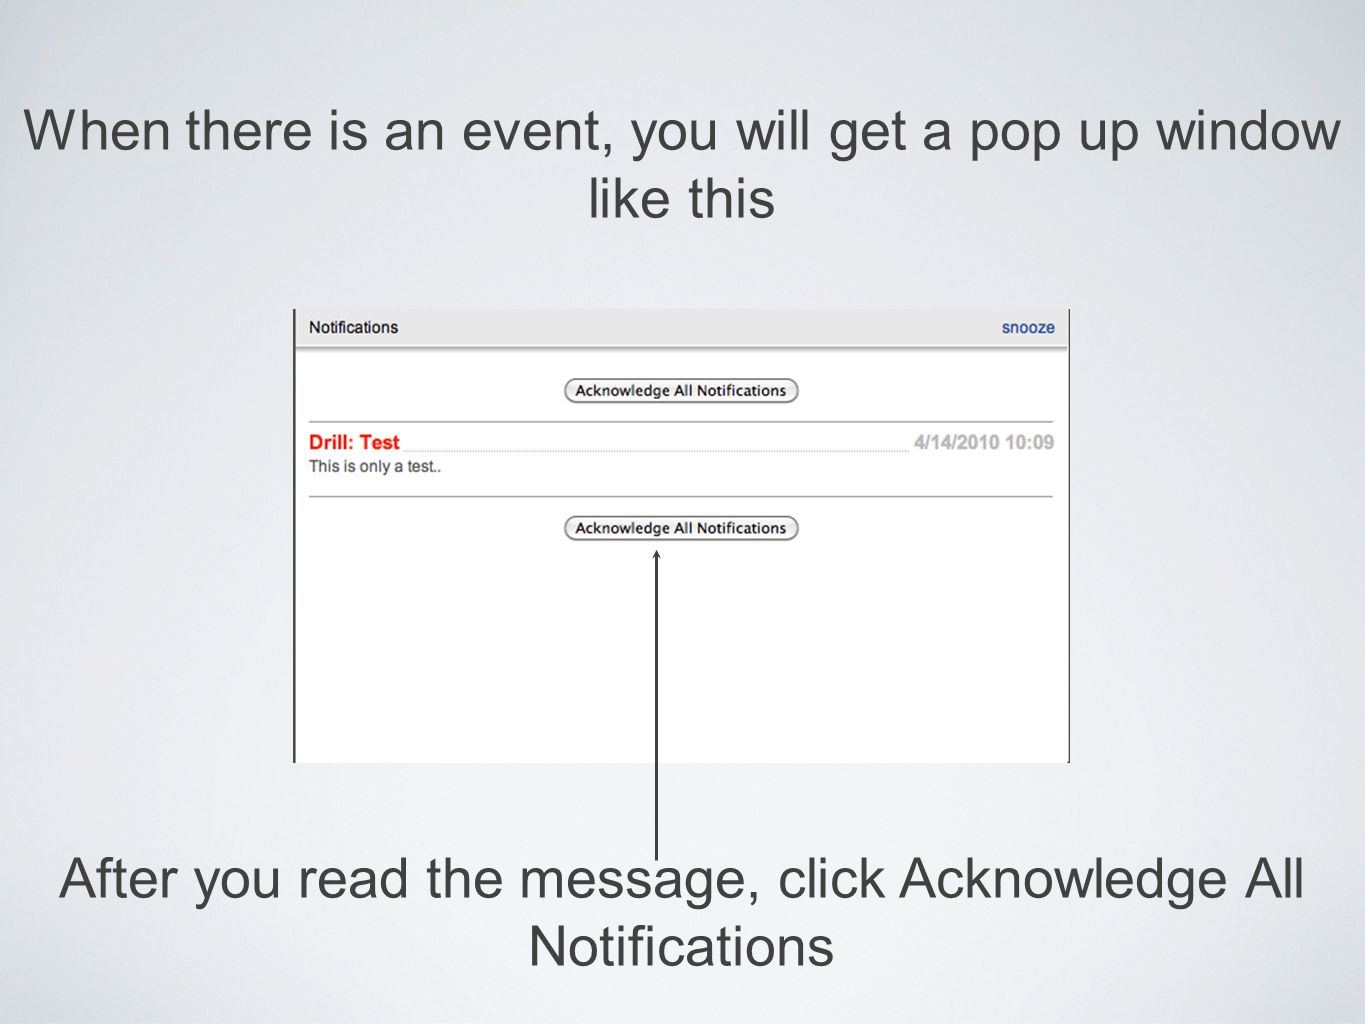 When there is an event, you will get a pop up window like this After you read the message, click Acknowledge All Notifications